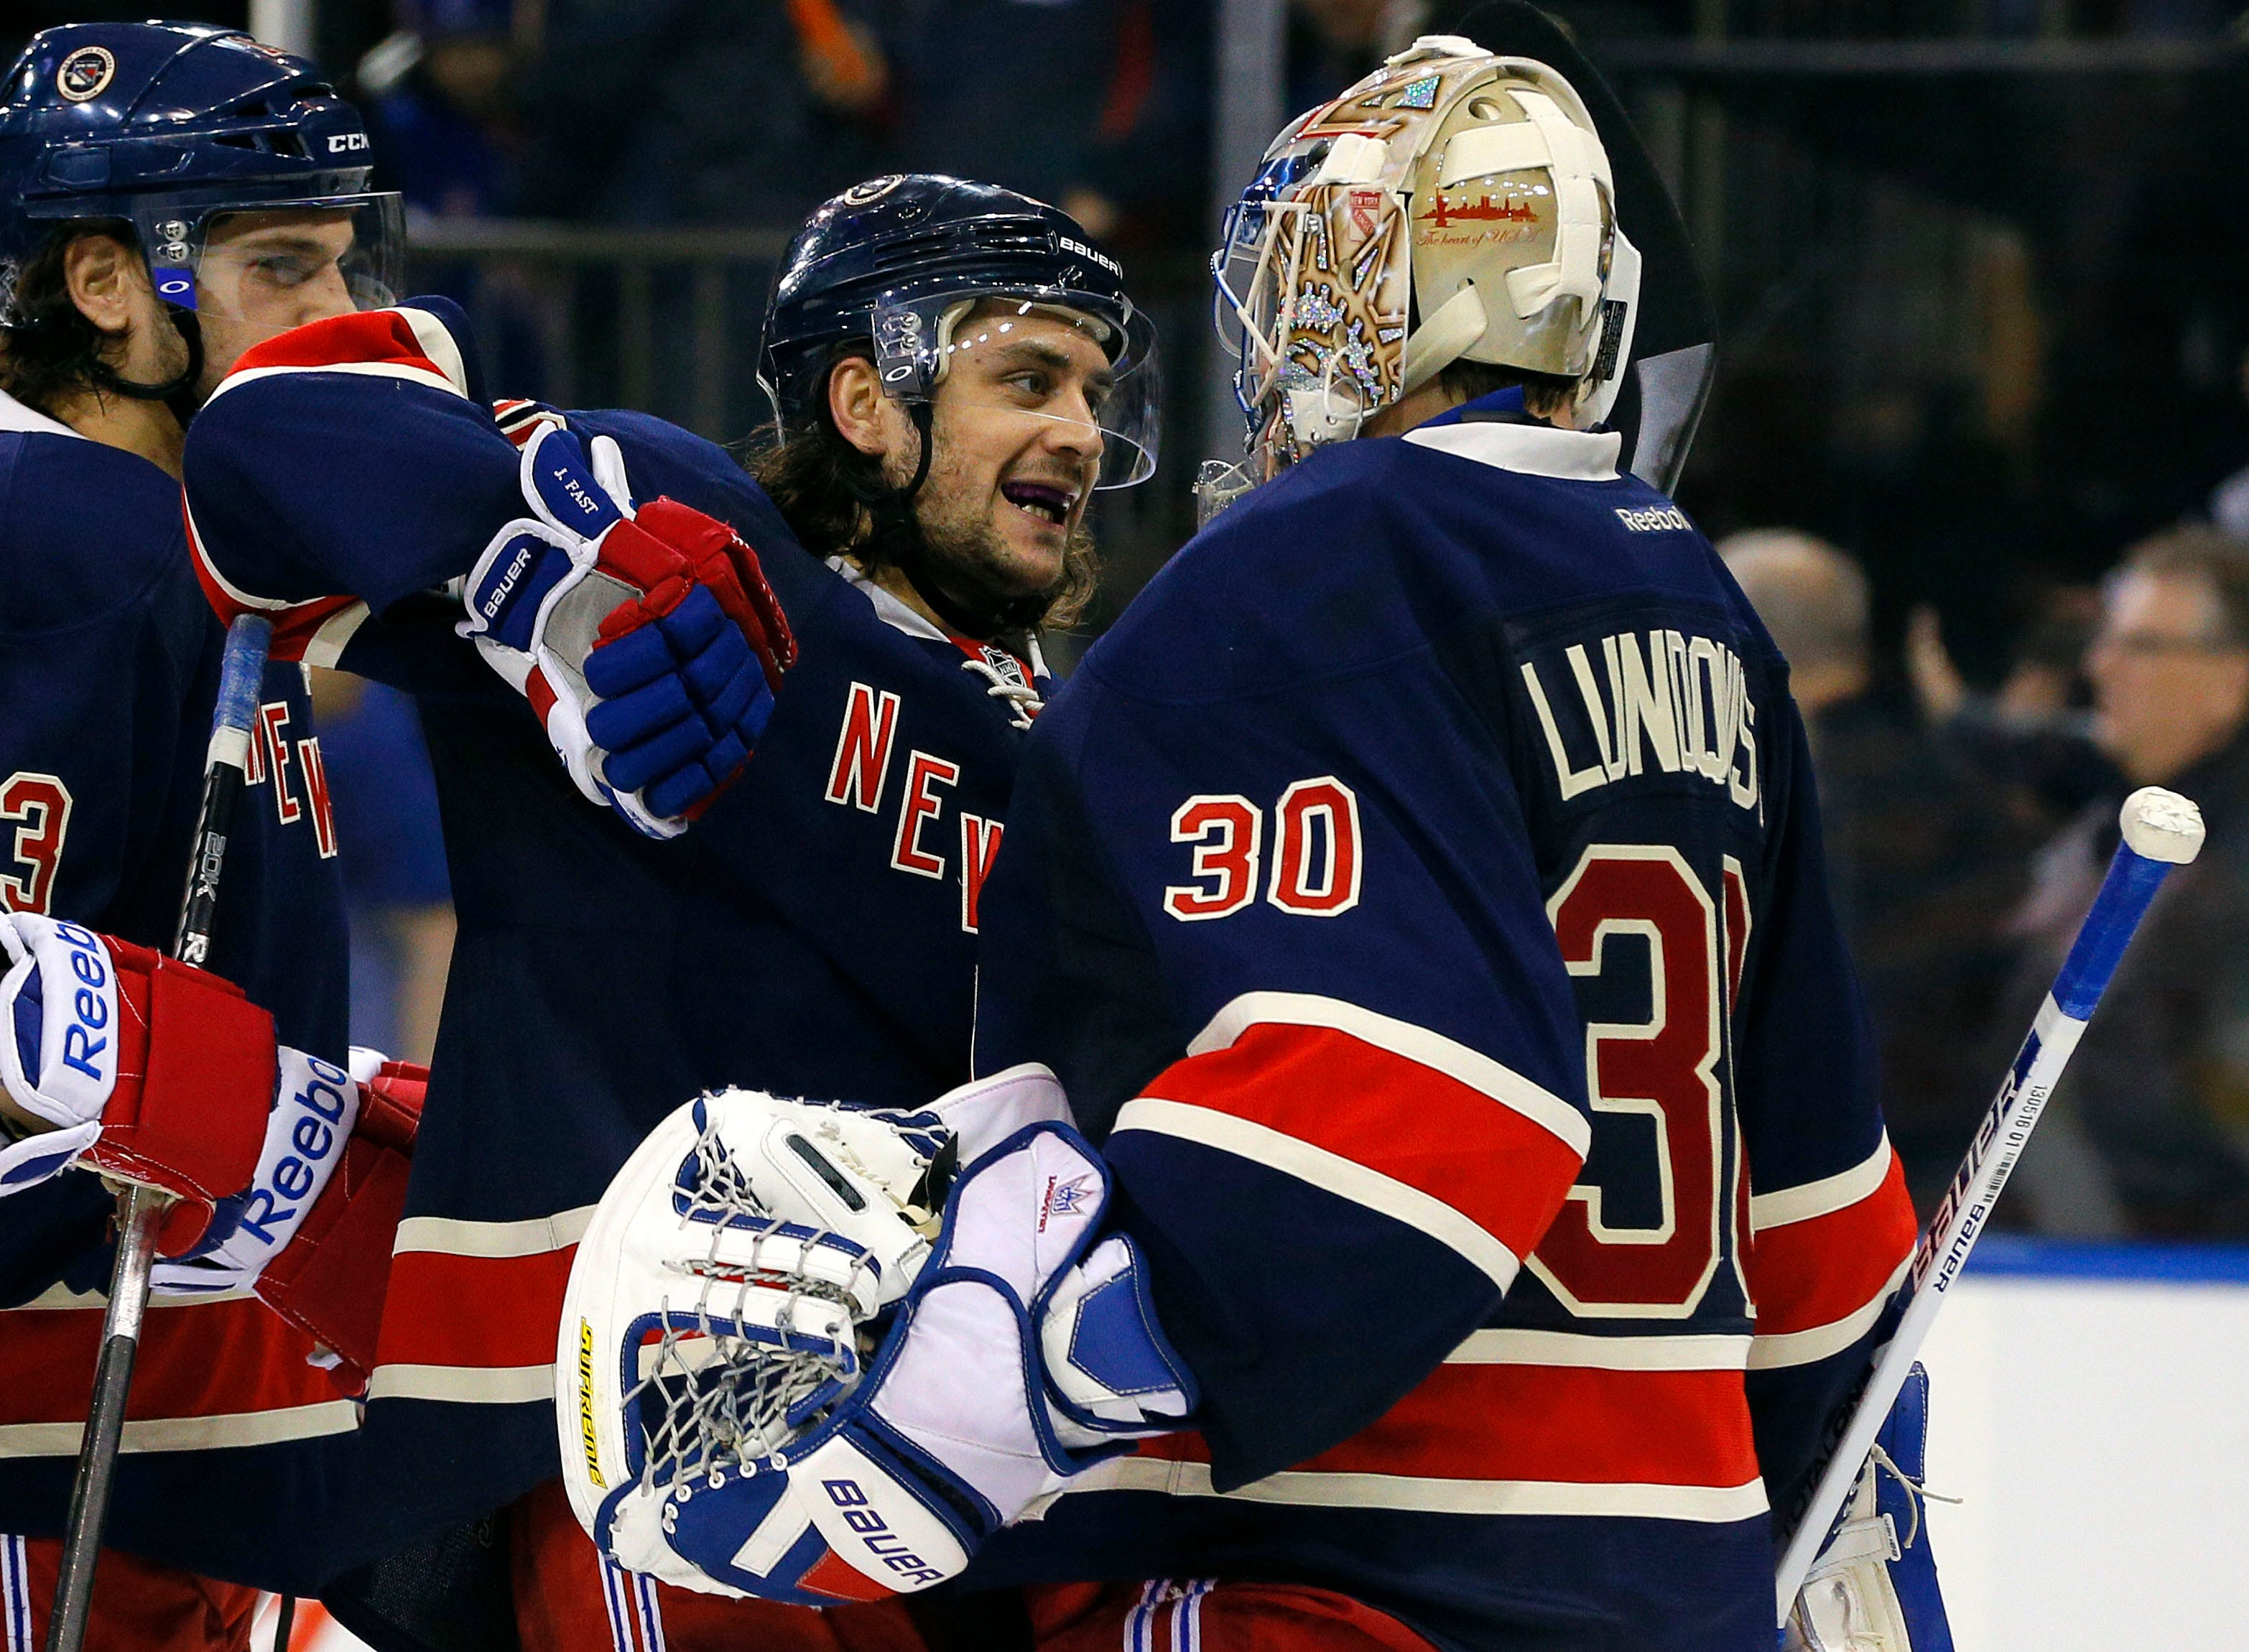 Henrik Lundqvist gets choked up when asked about former Rangers teammate who just got traded